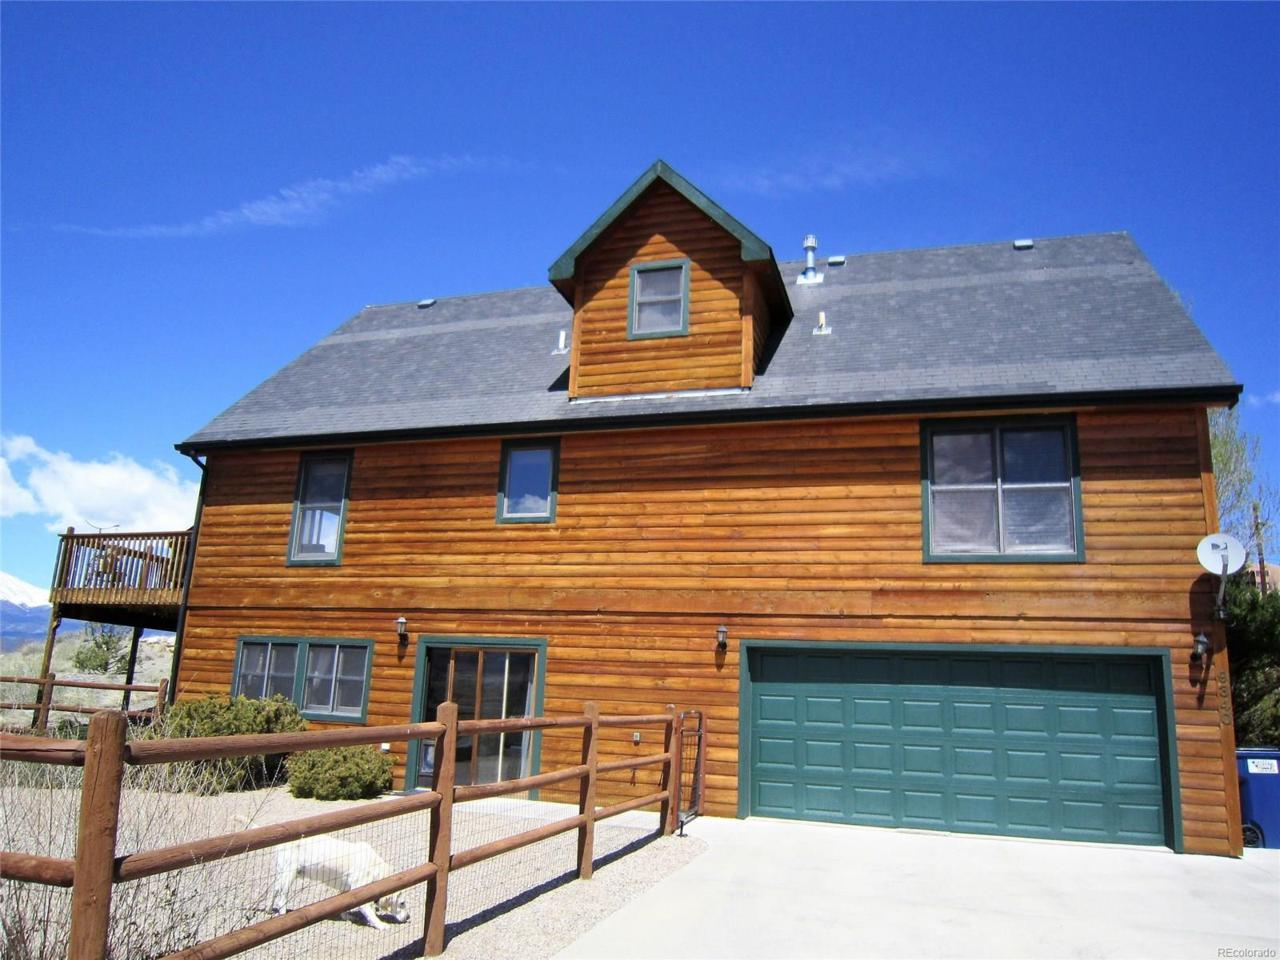 9340 County Road 178 A, Salida, CO 81201 (MLS #7666682) :: 8z Real Estate